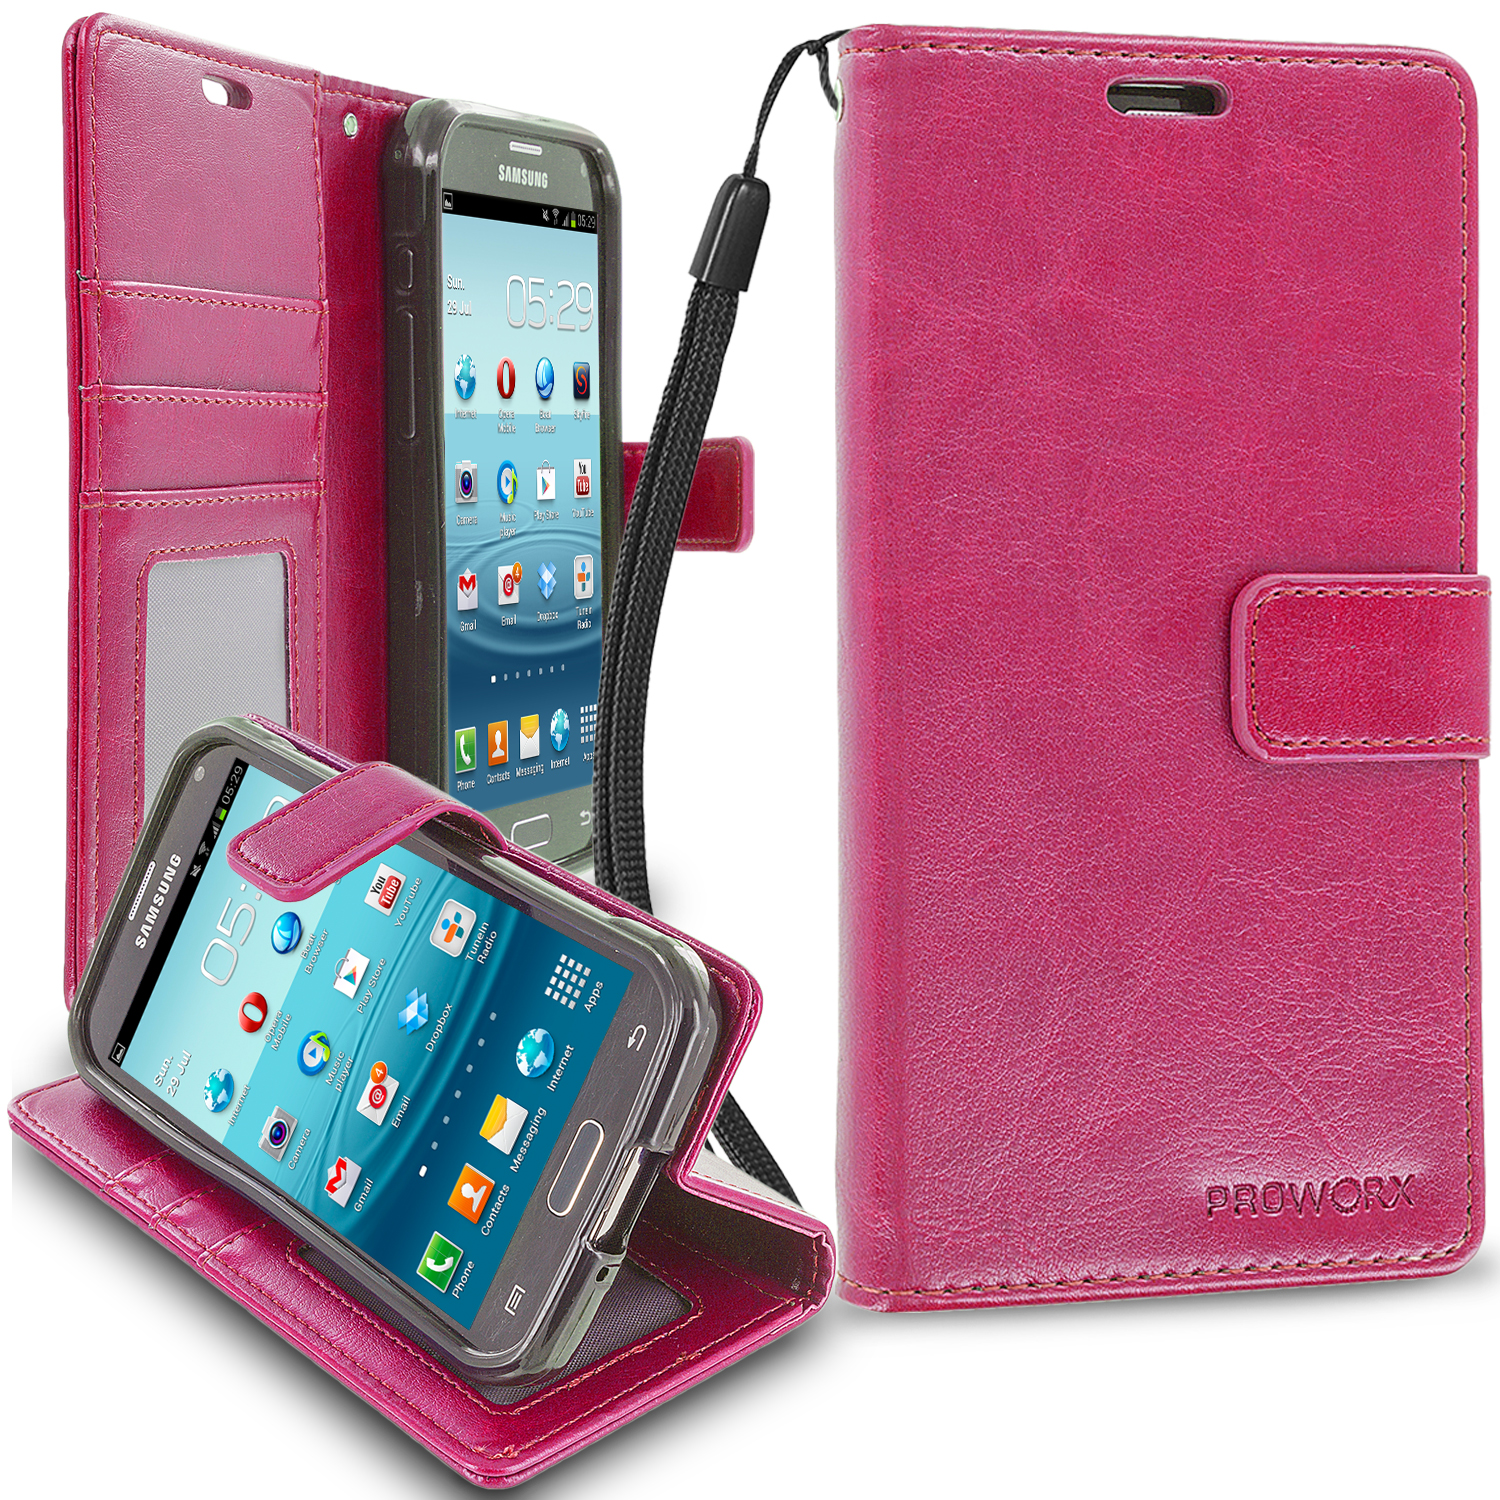 Samsung Galaxy S5 Active Hot Pink ProWorx Wallet Case Luxury PU Leather Case Cover With Card Slots & Stand